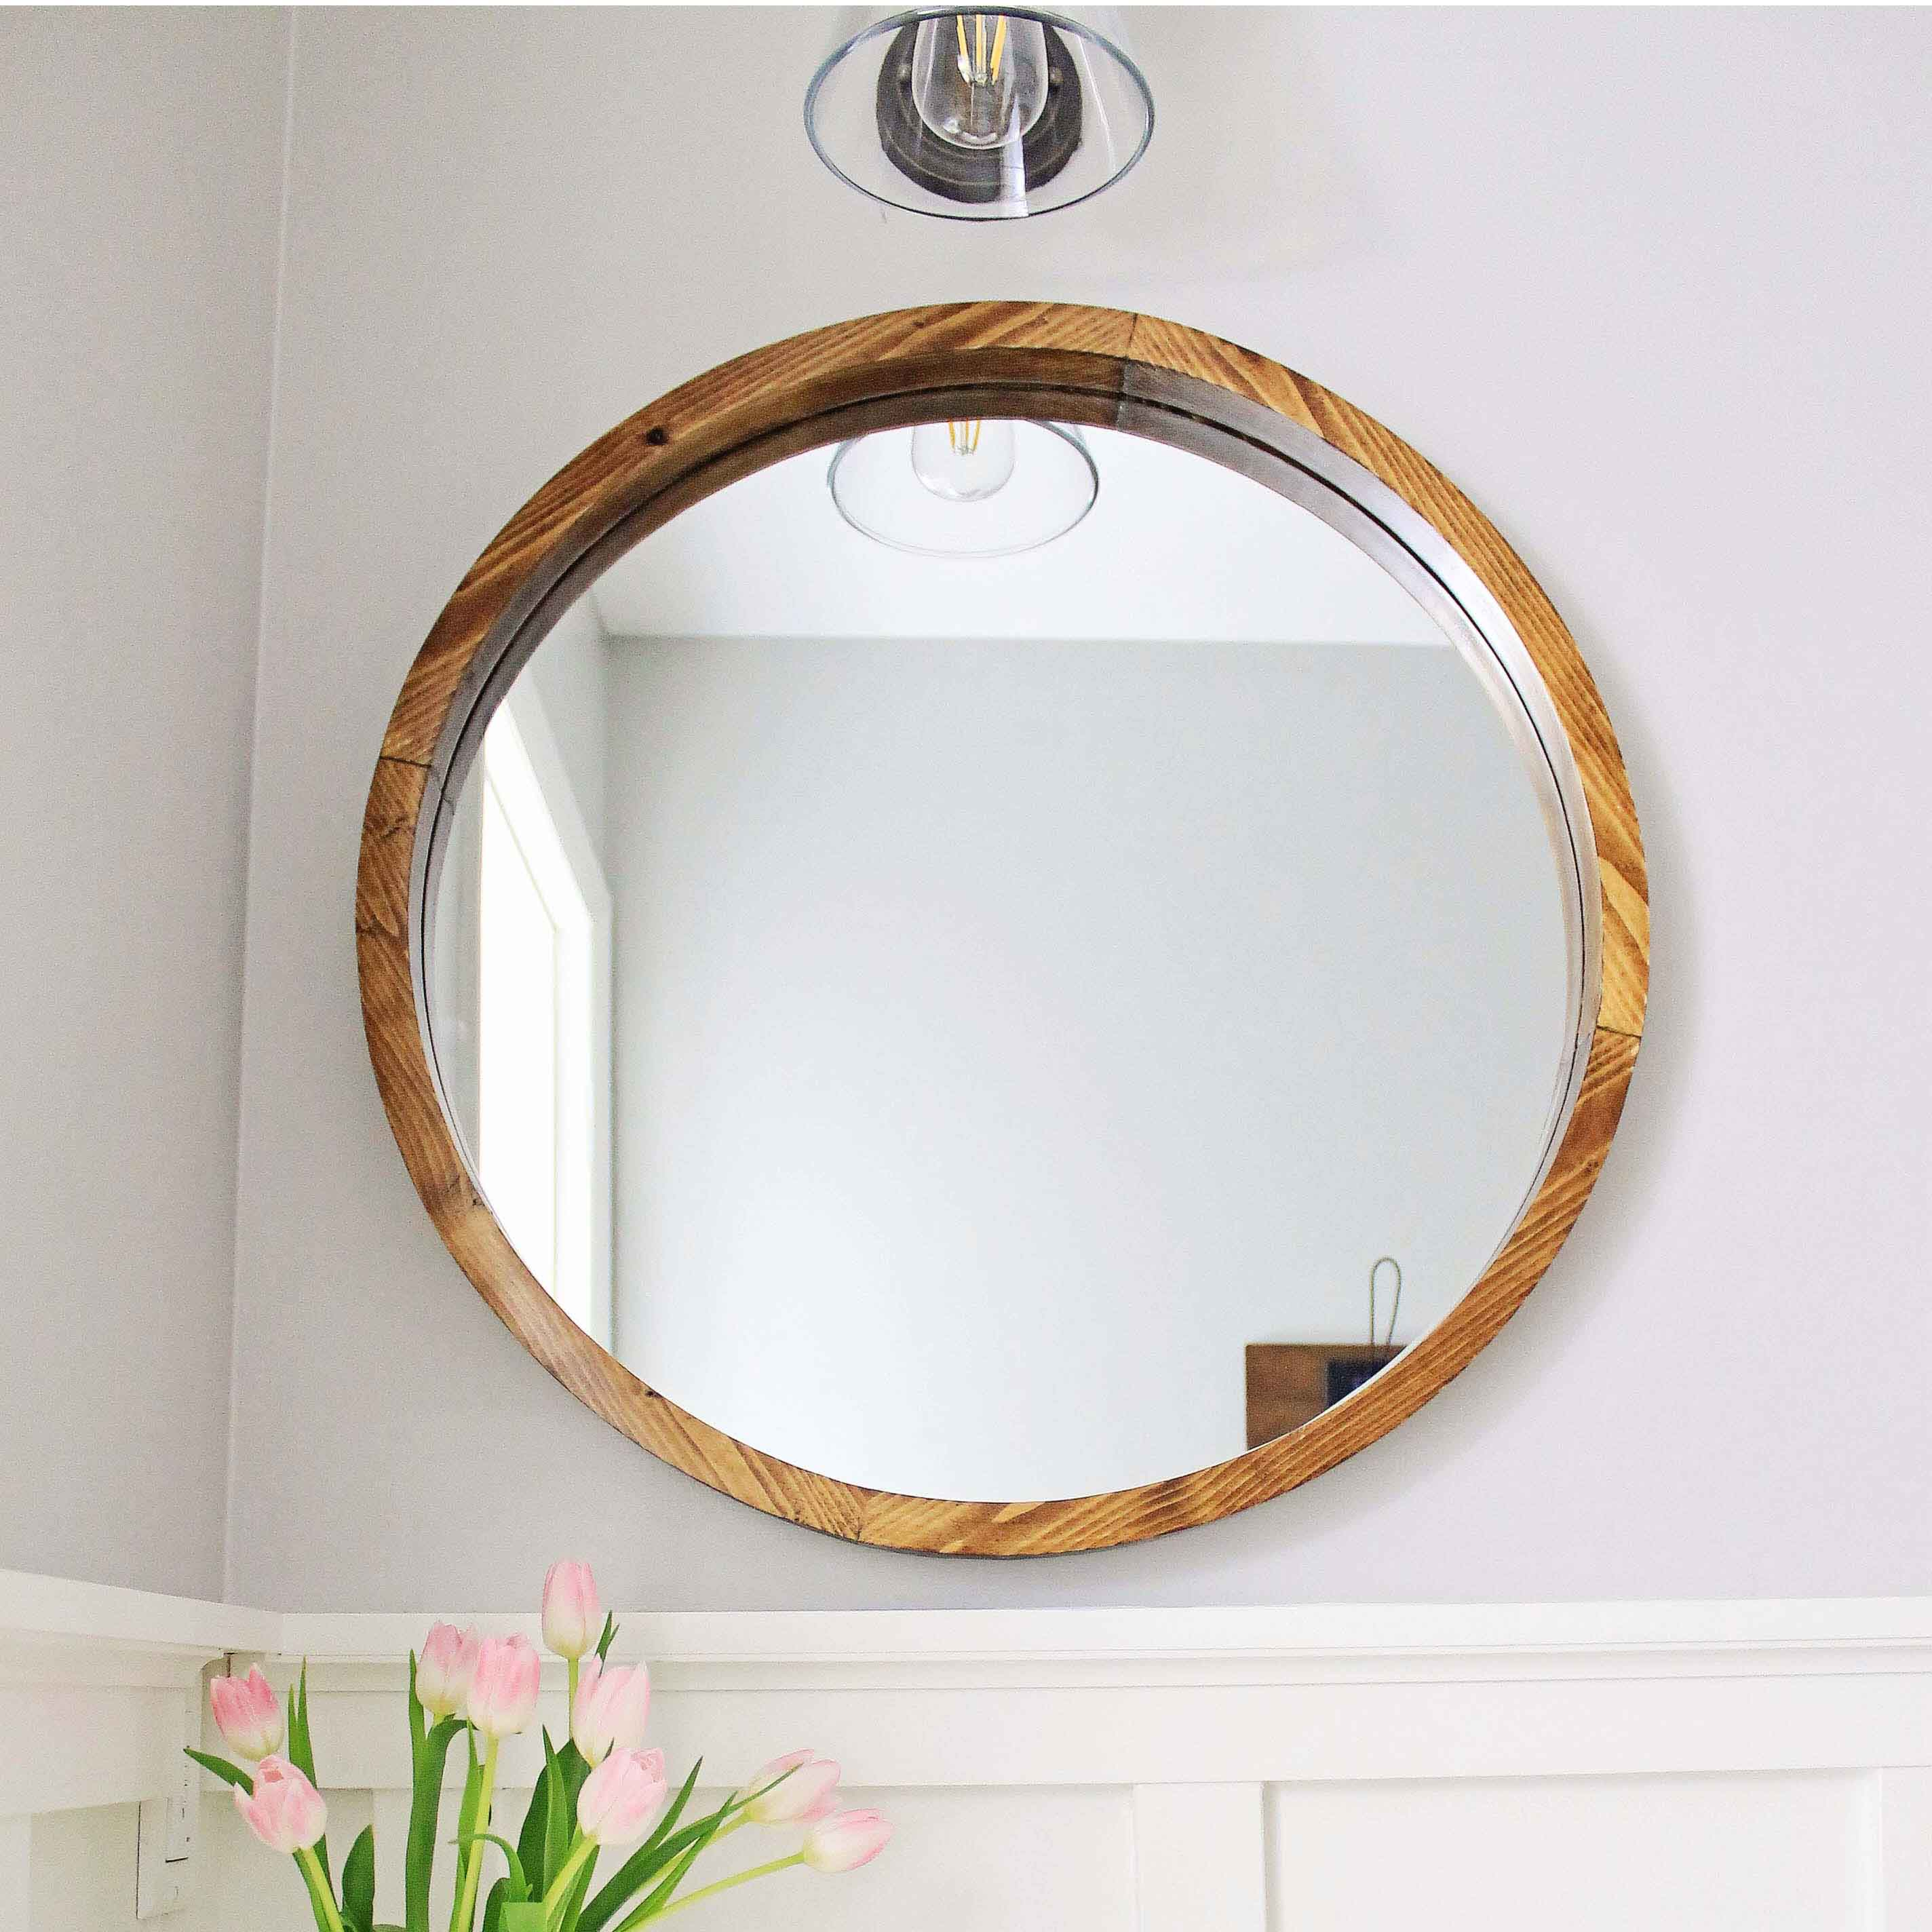 round wood mirror diy angela marie made - Mirror Frame